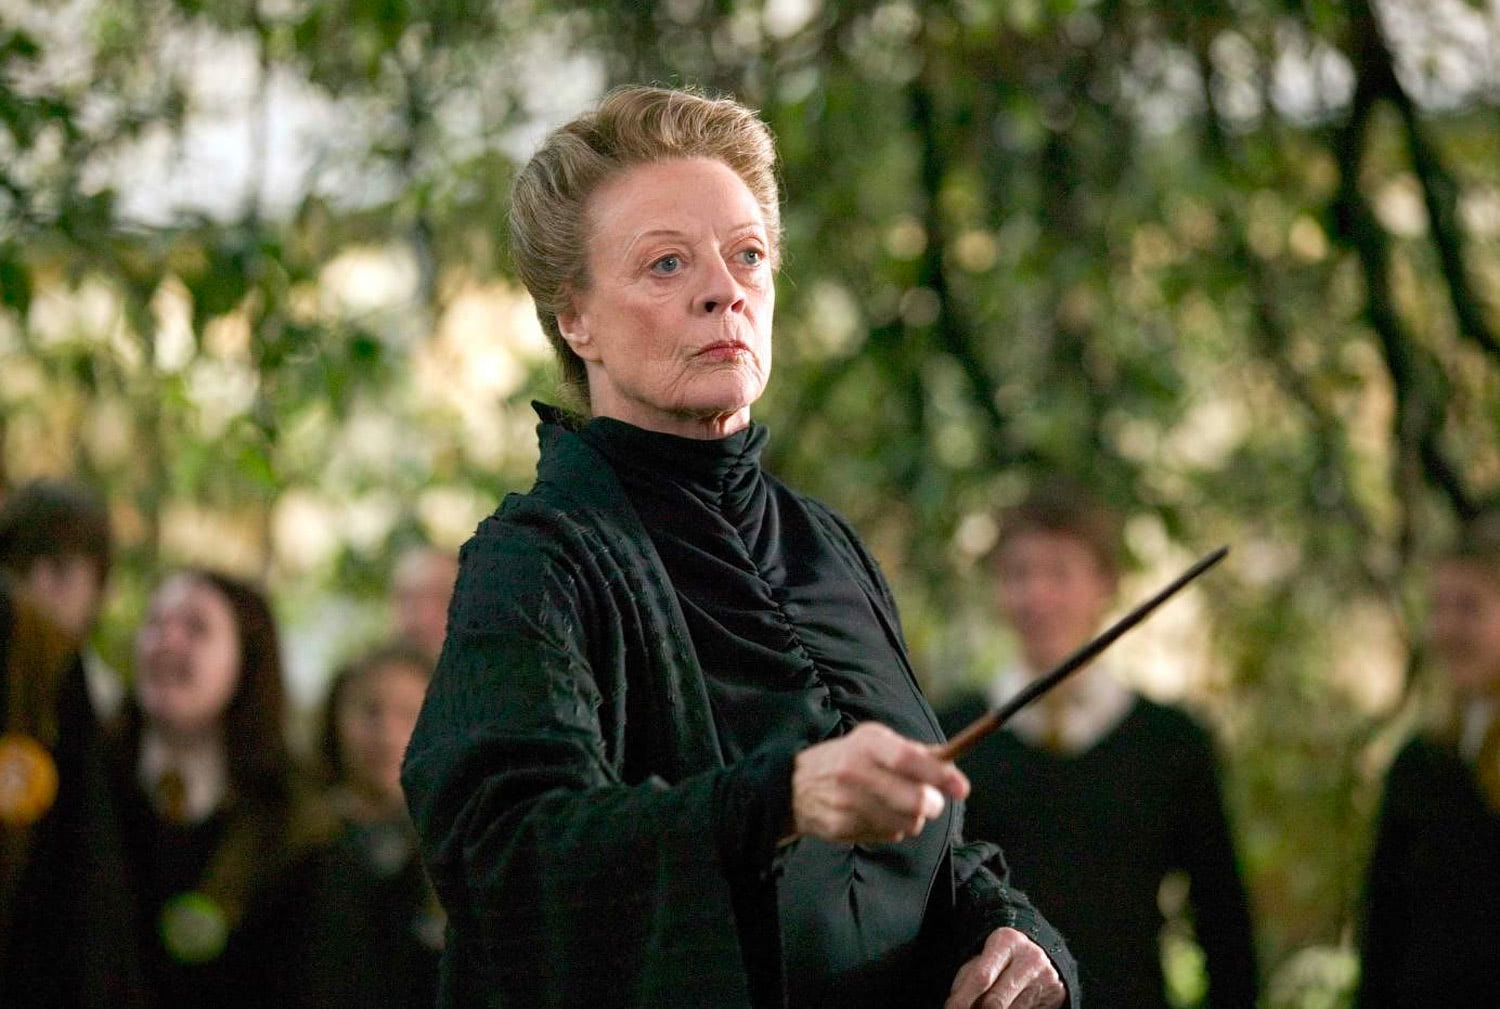 Professor McGonagall with wand at the ready